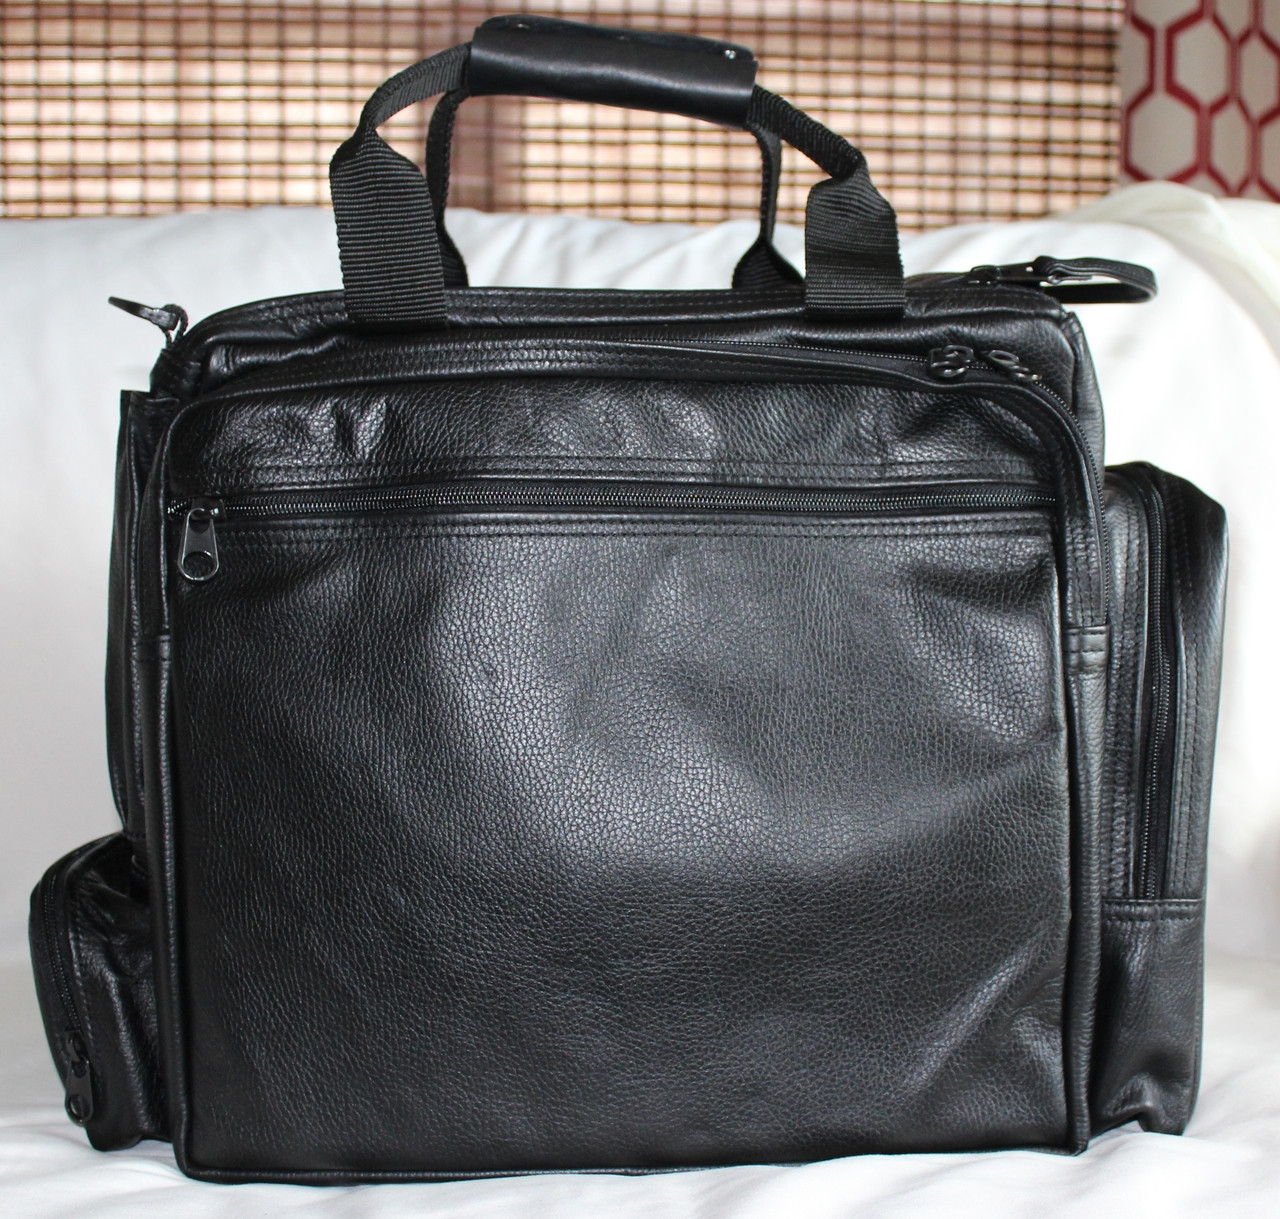 92acab4a16c9 Ultimate Flight Bag - Leather (Special Order) - Mission Bags